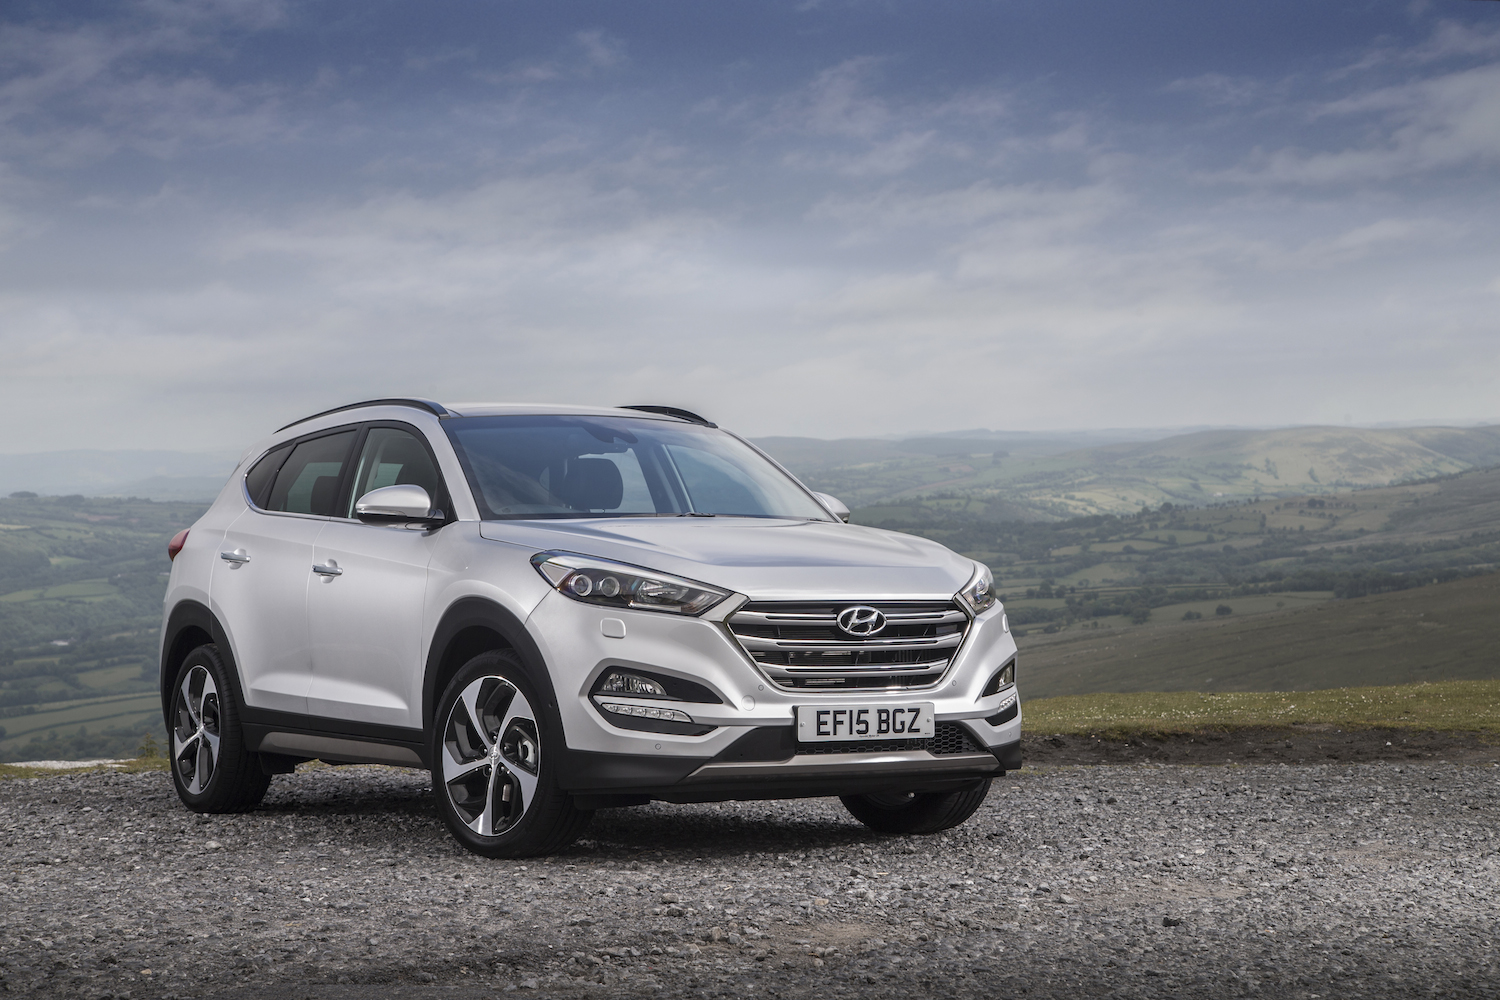 hyundai tucson review 2015 uk first drive motoring research. Black Bedroom Furniture Sets. Home Design Ideas